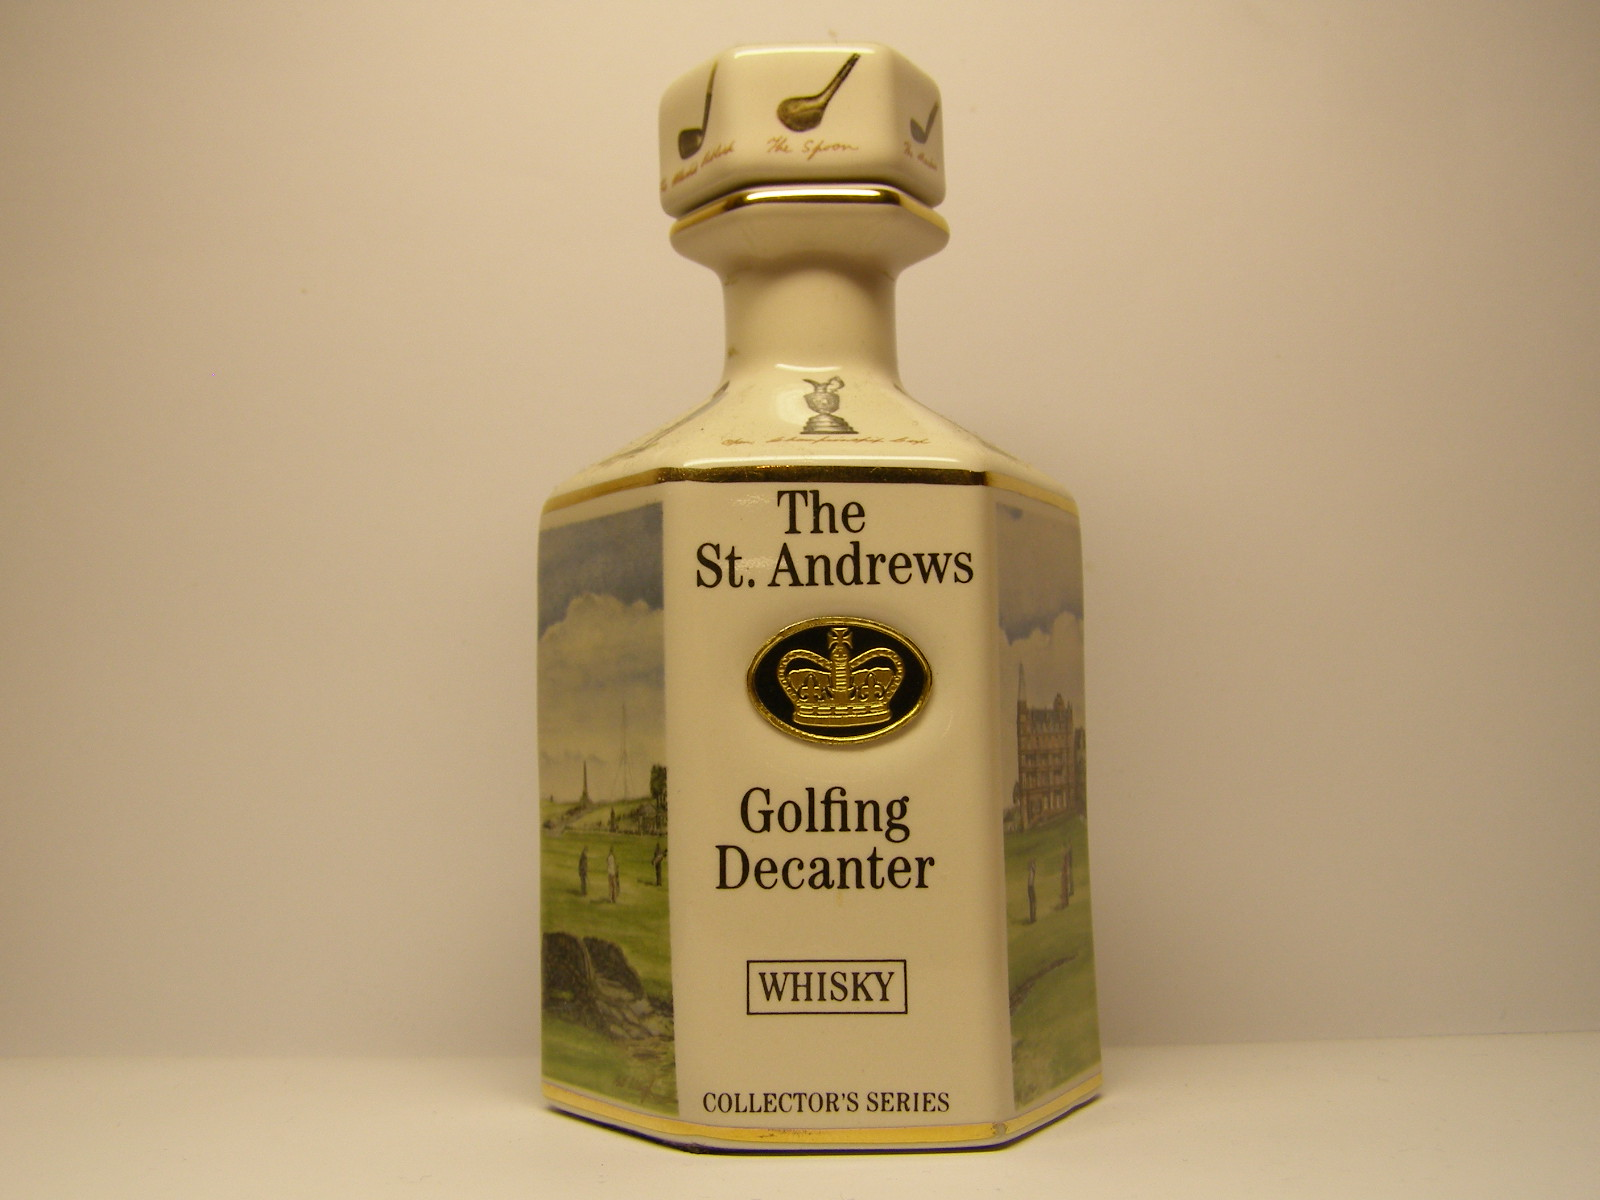 The St.ANDREWS Golfing Decanter